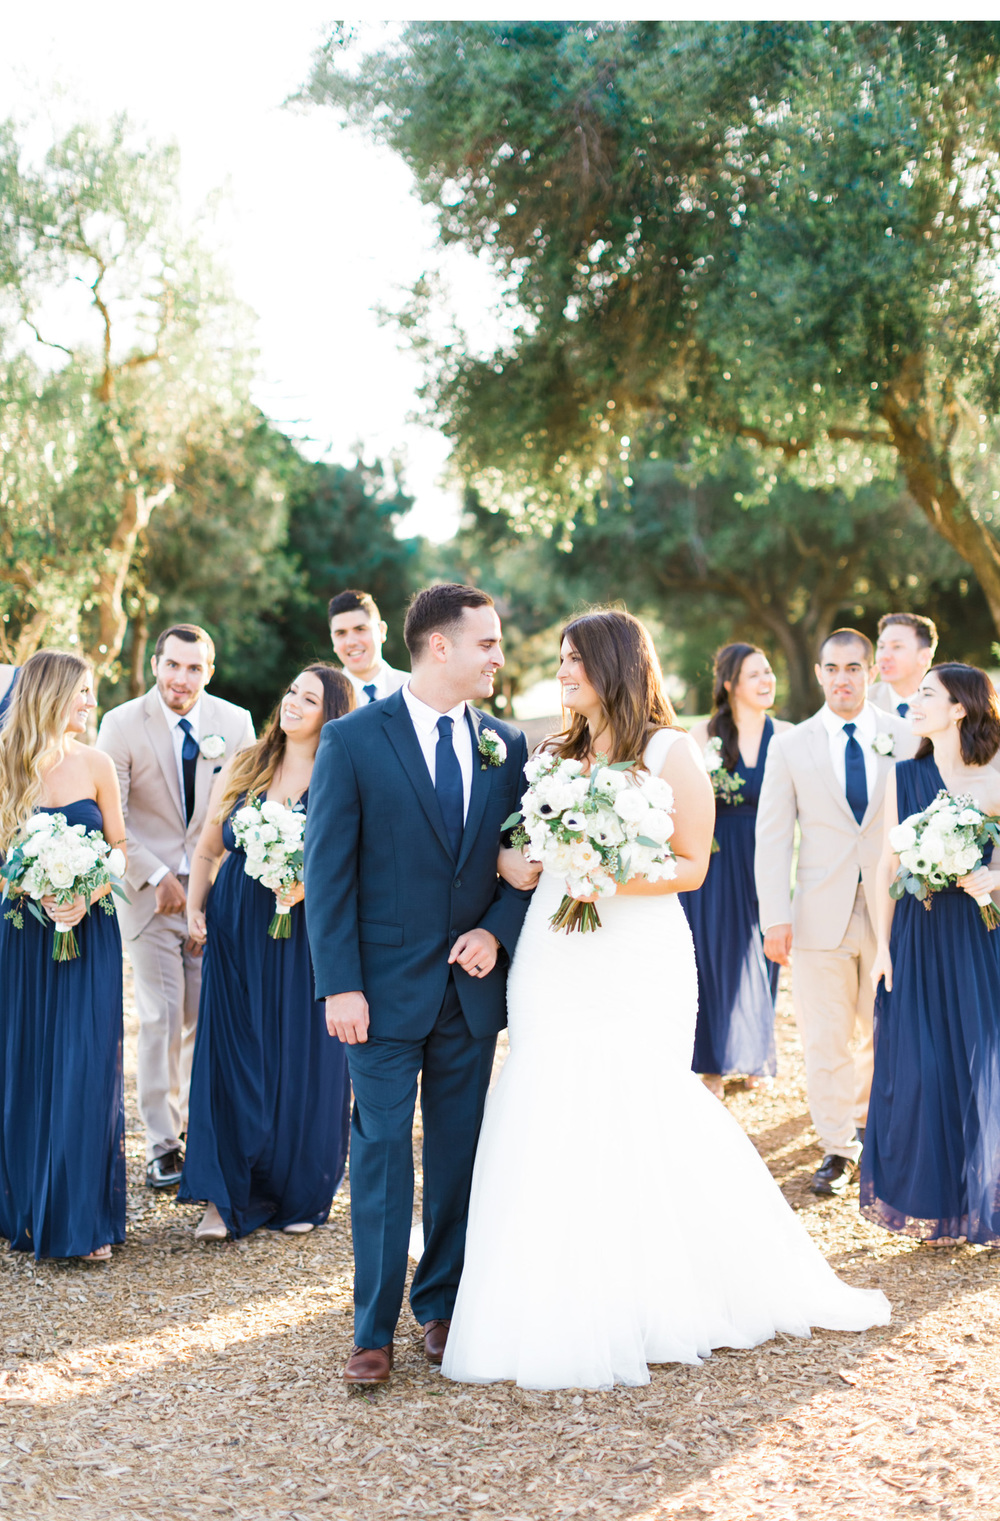 San-Luis-Obispo-Wedding-Natalie-Schutt-Photography_01.jpg